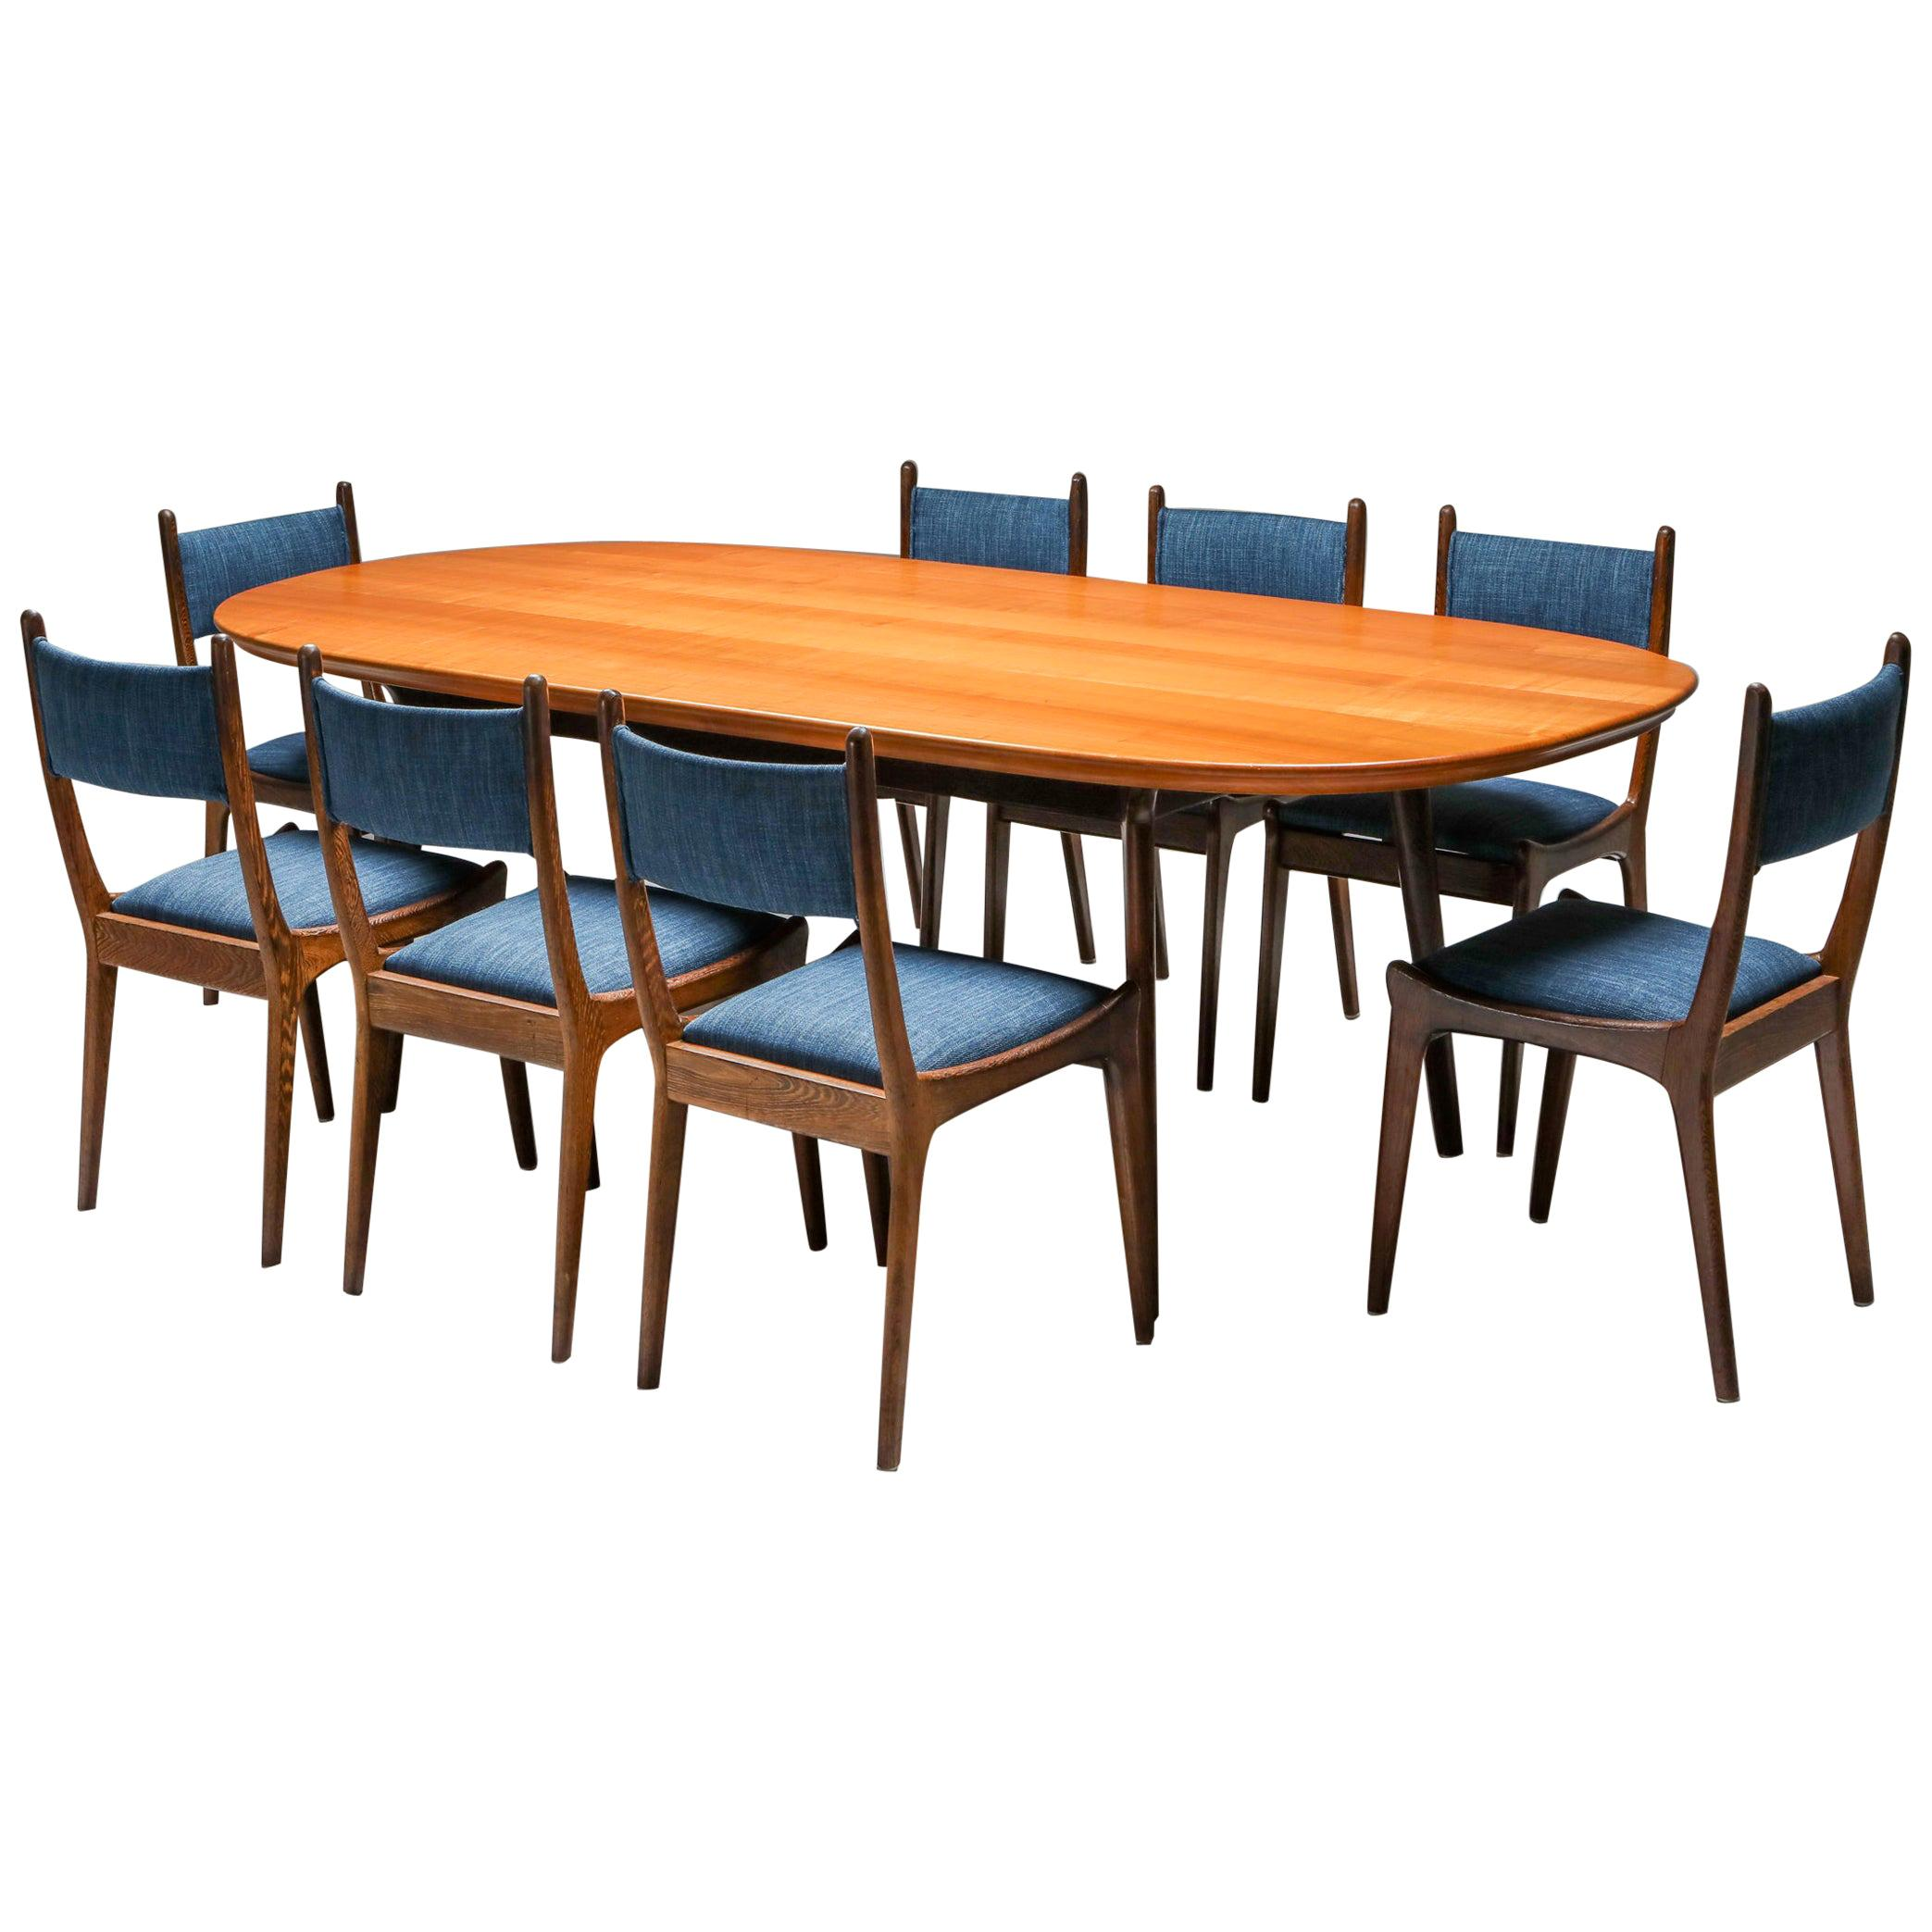 Mid-Century Modern Dining Set in Wengé and Cherry